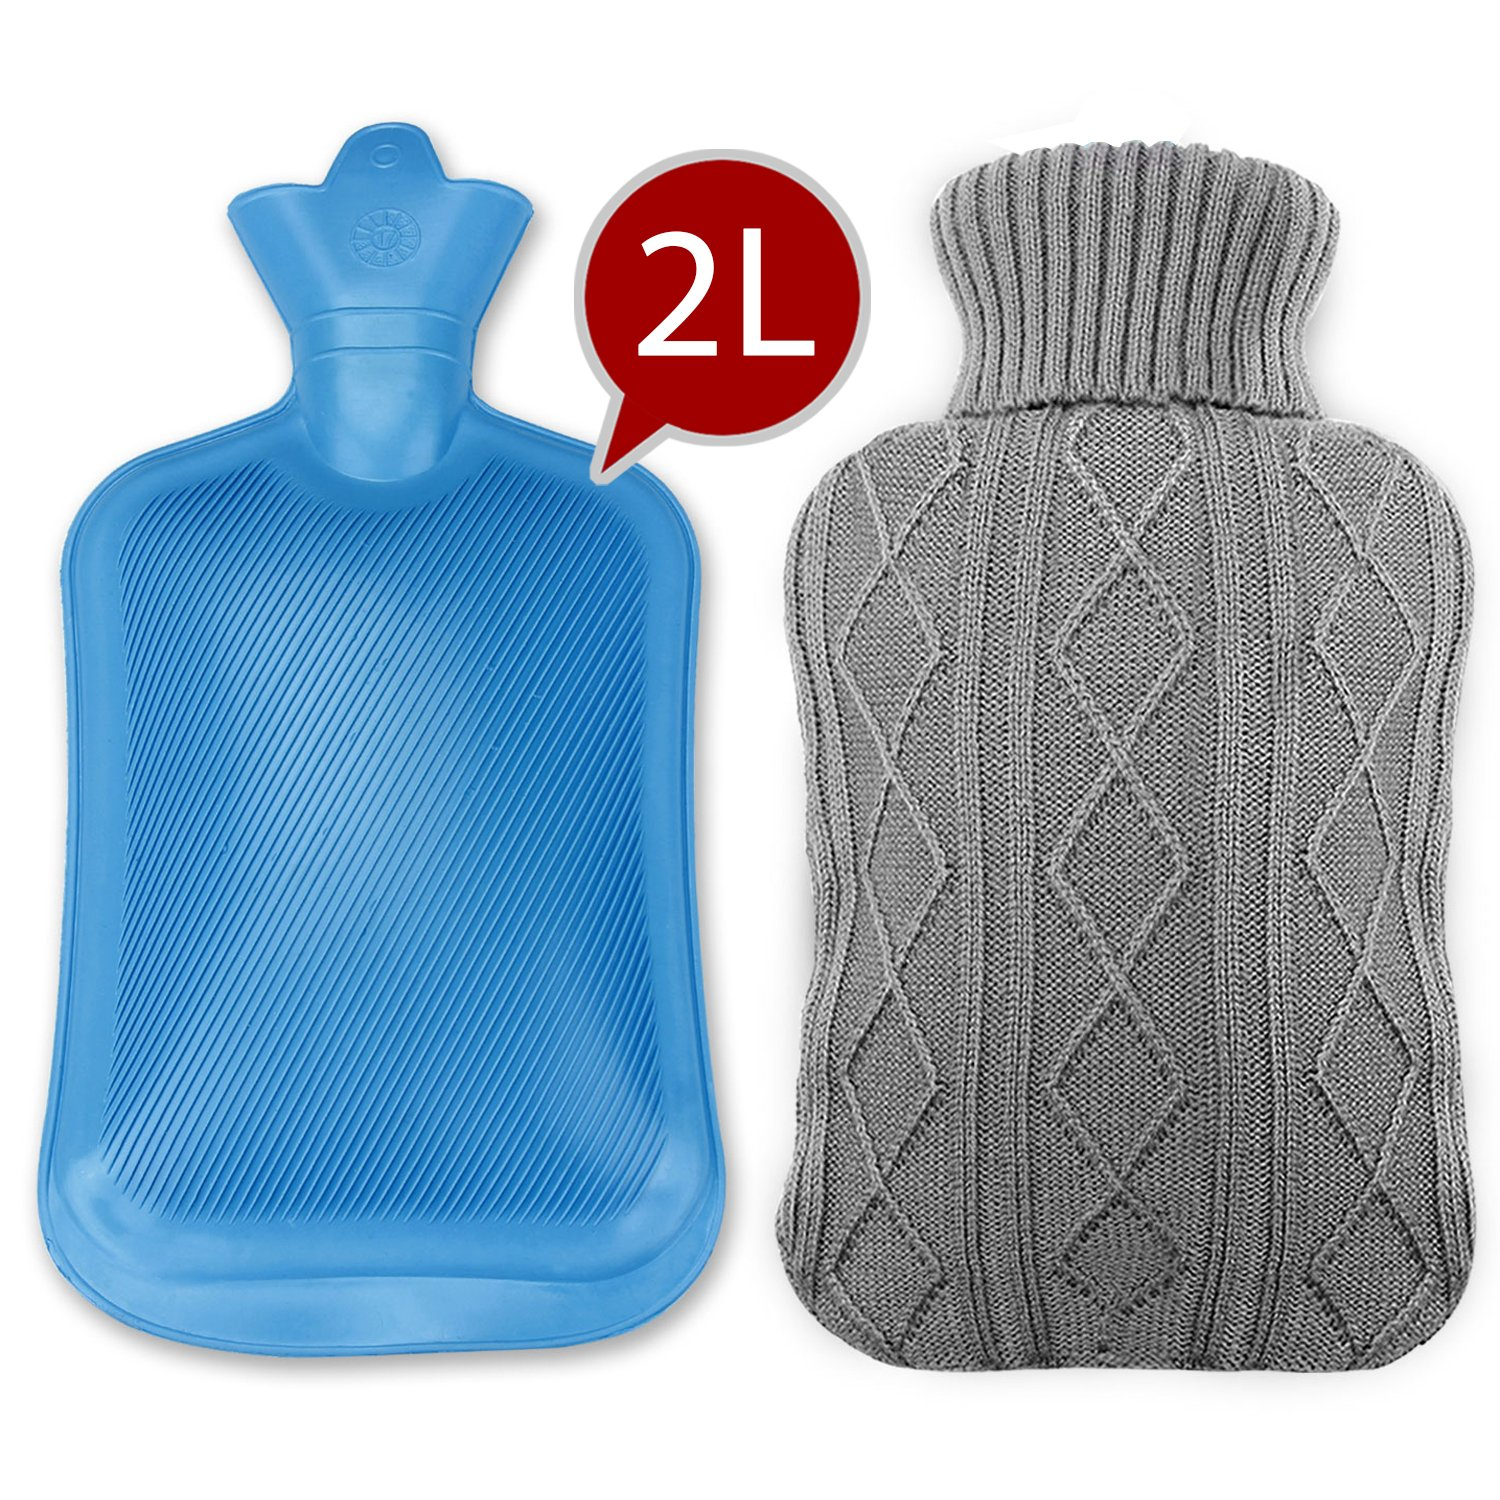 Hot Water Bottle, UBEGOOD Classic Rubber Hot Water Bag with Knit Cover, Great for Pain Relief, Hot and Cold Therapy (2 Liter, Blue/Gray)